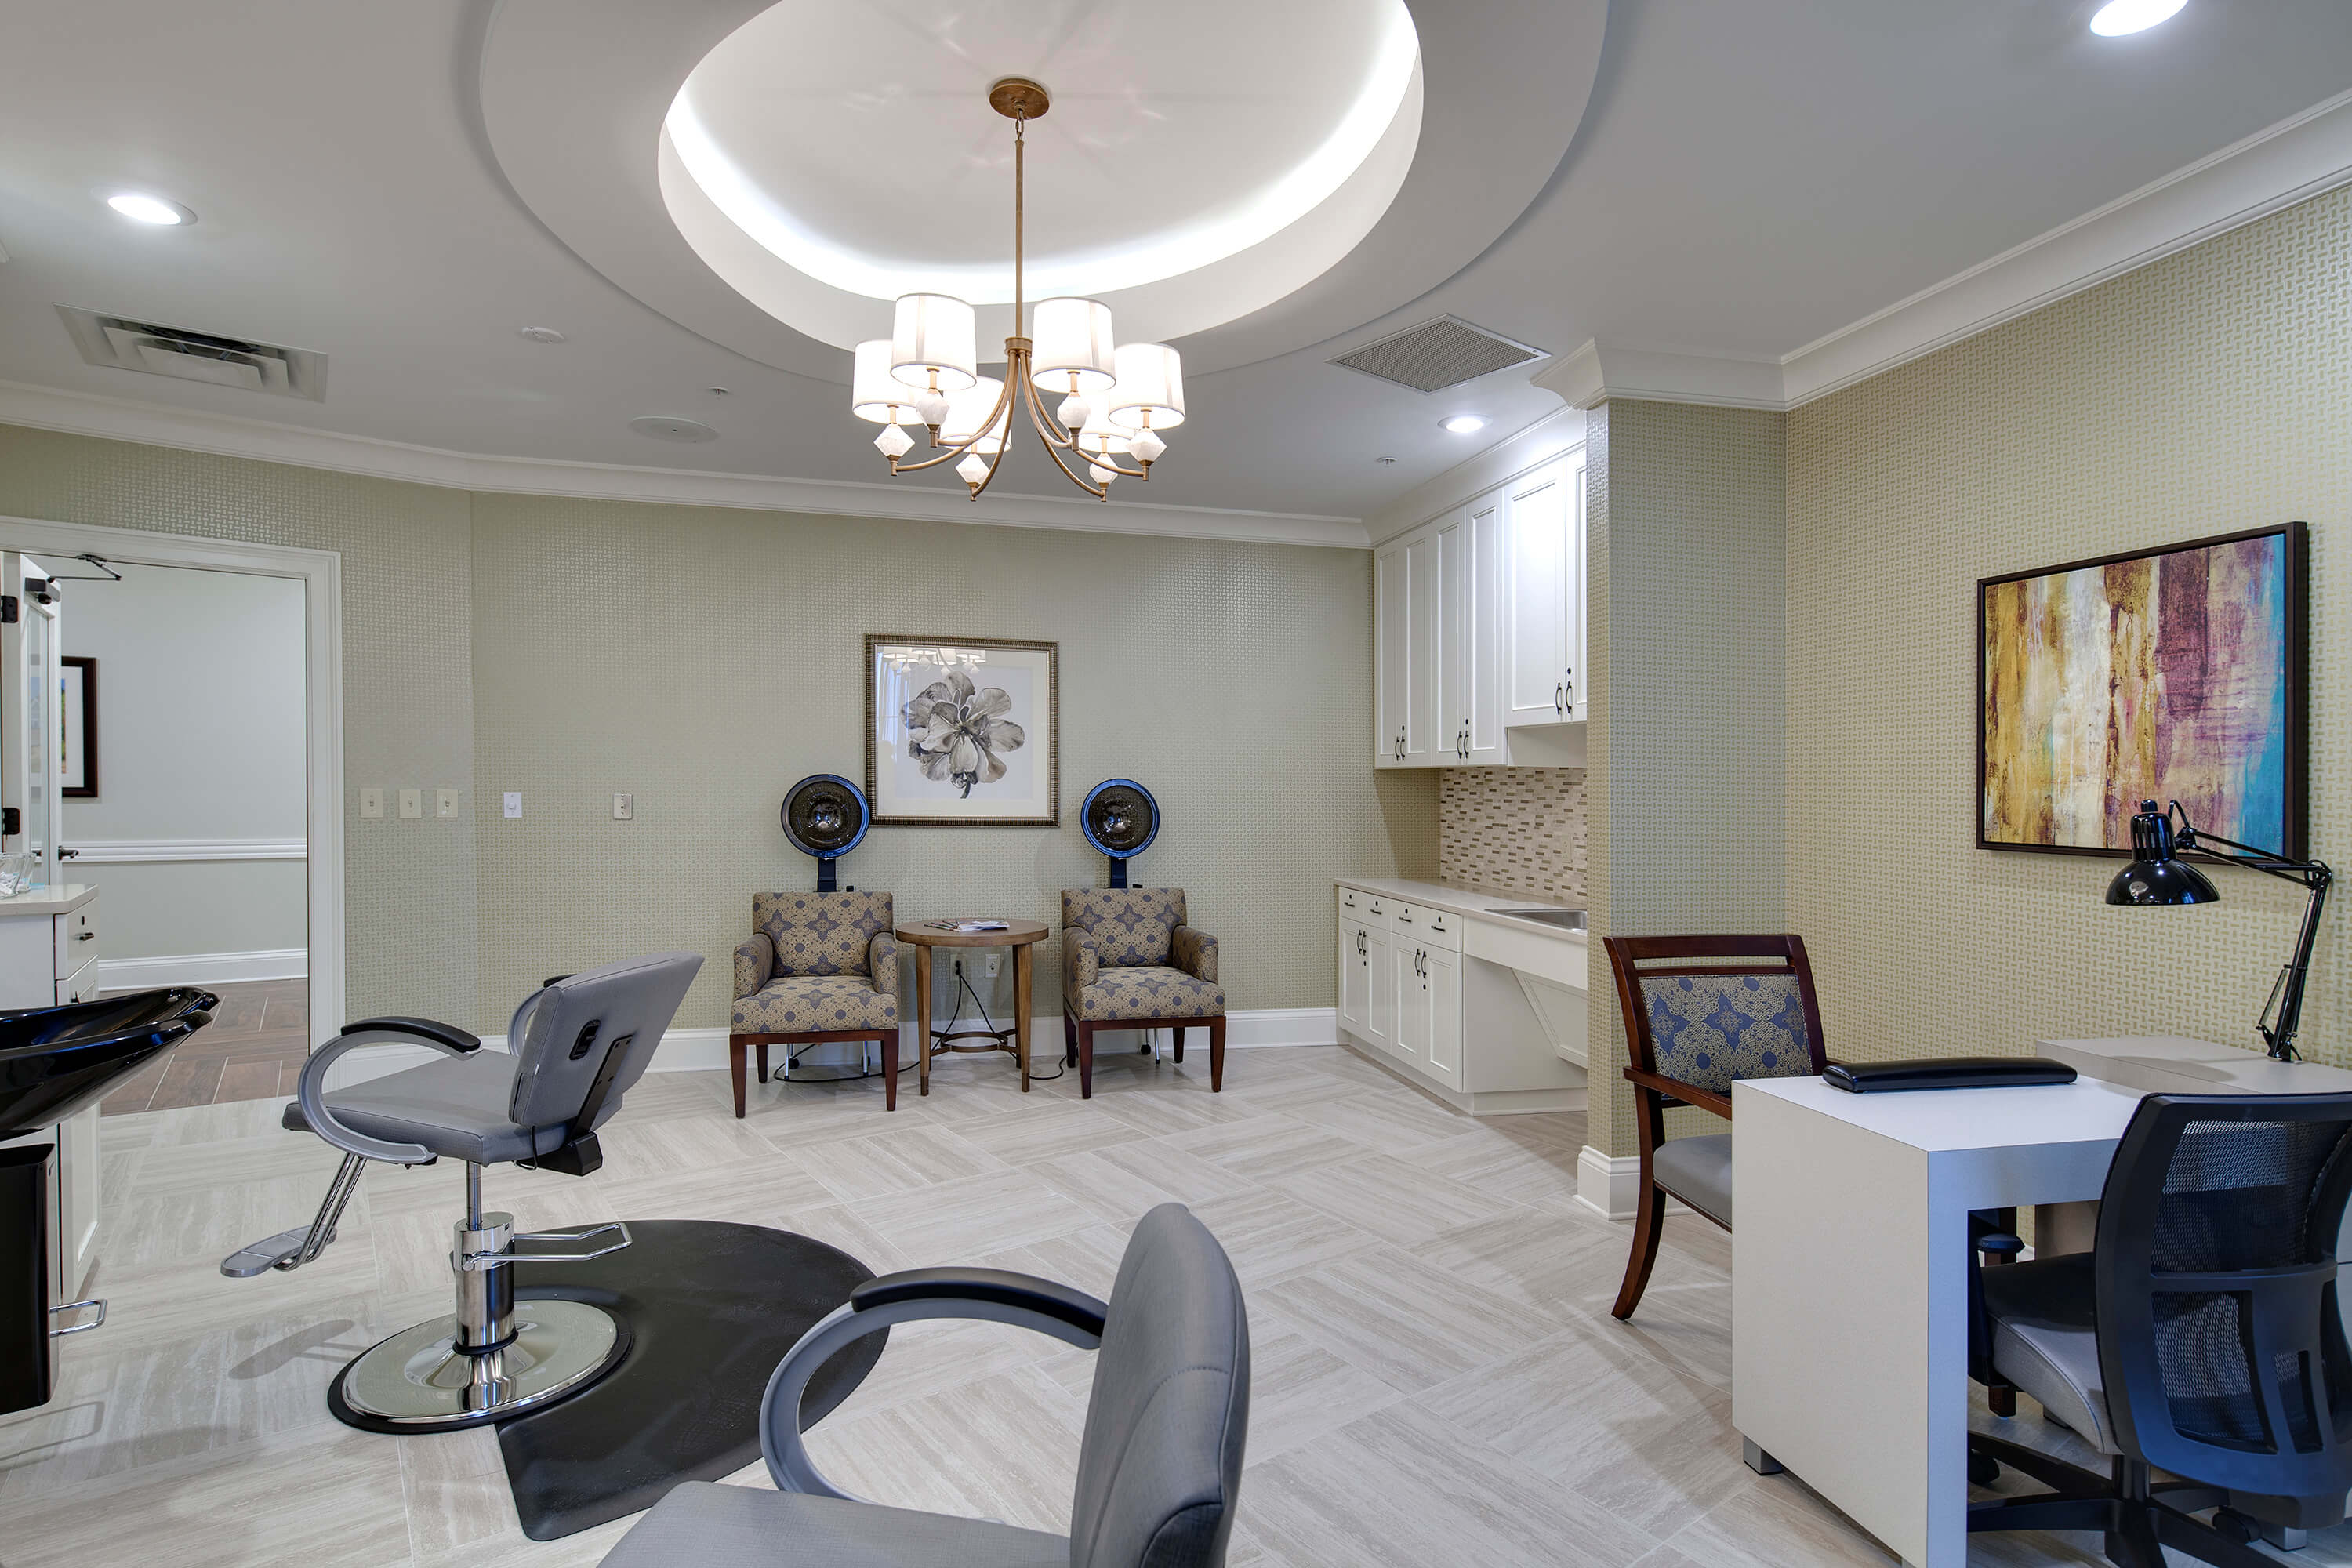 arbor-terrace-of-johns-creek-on-site-wellness-center